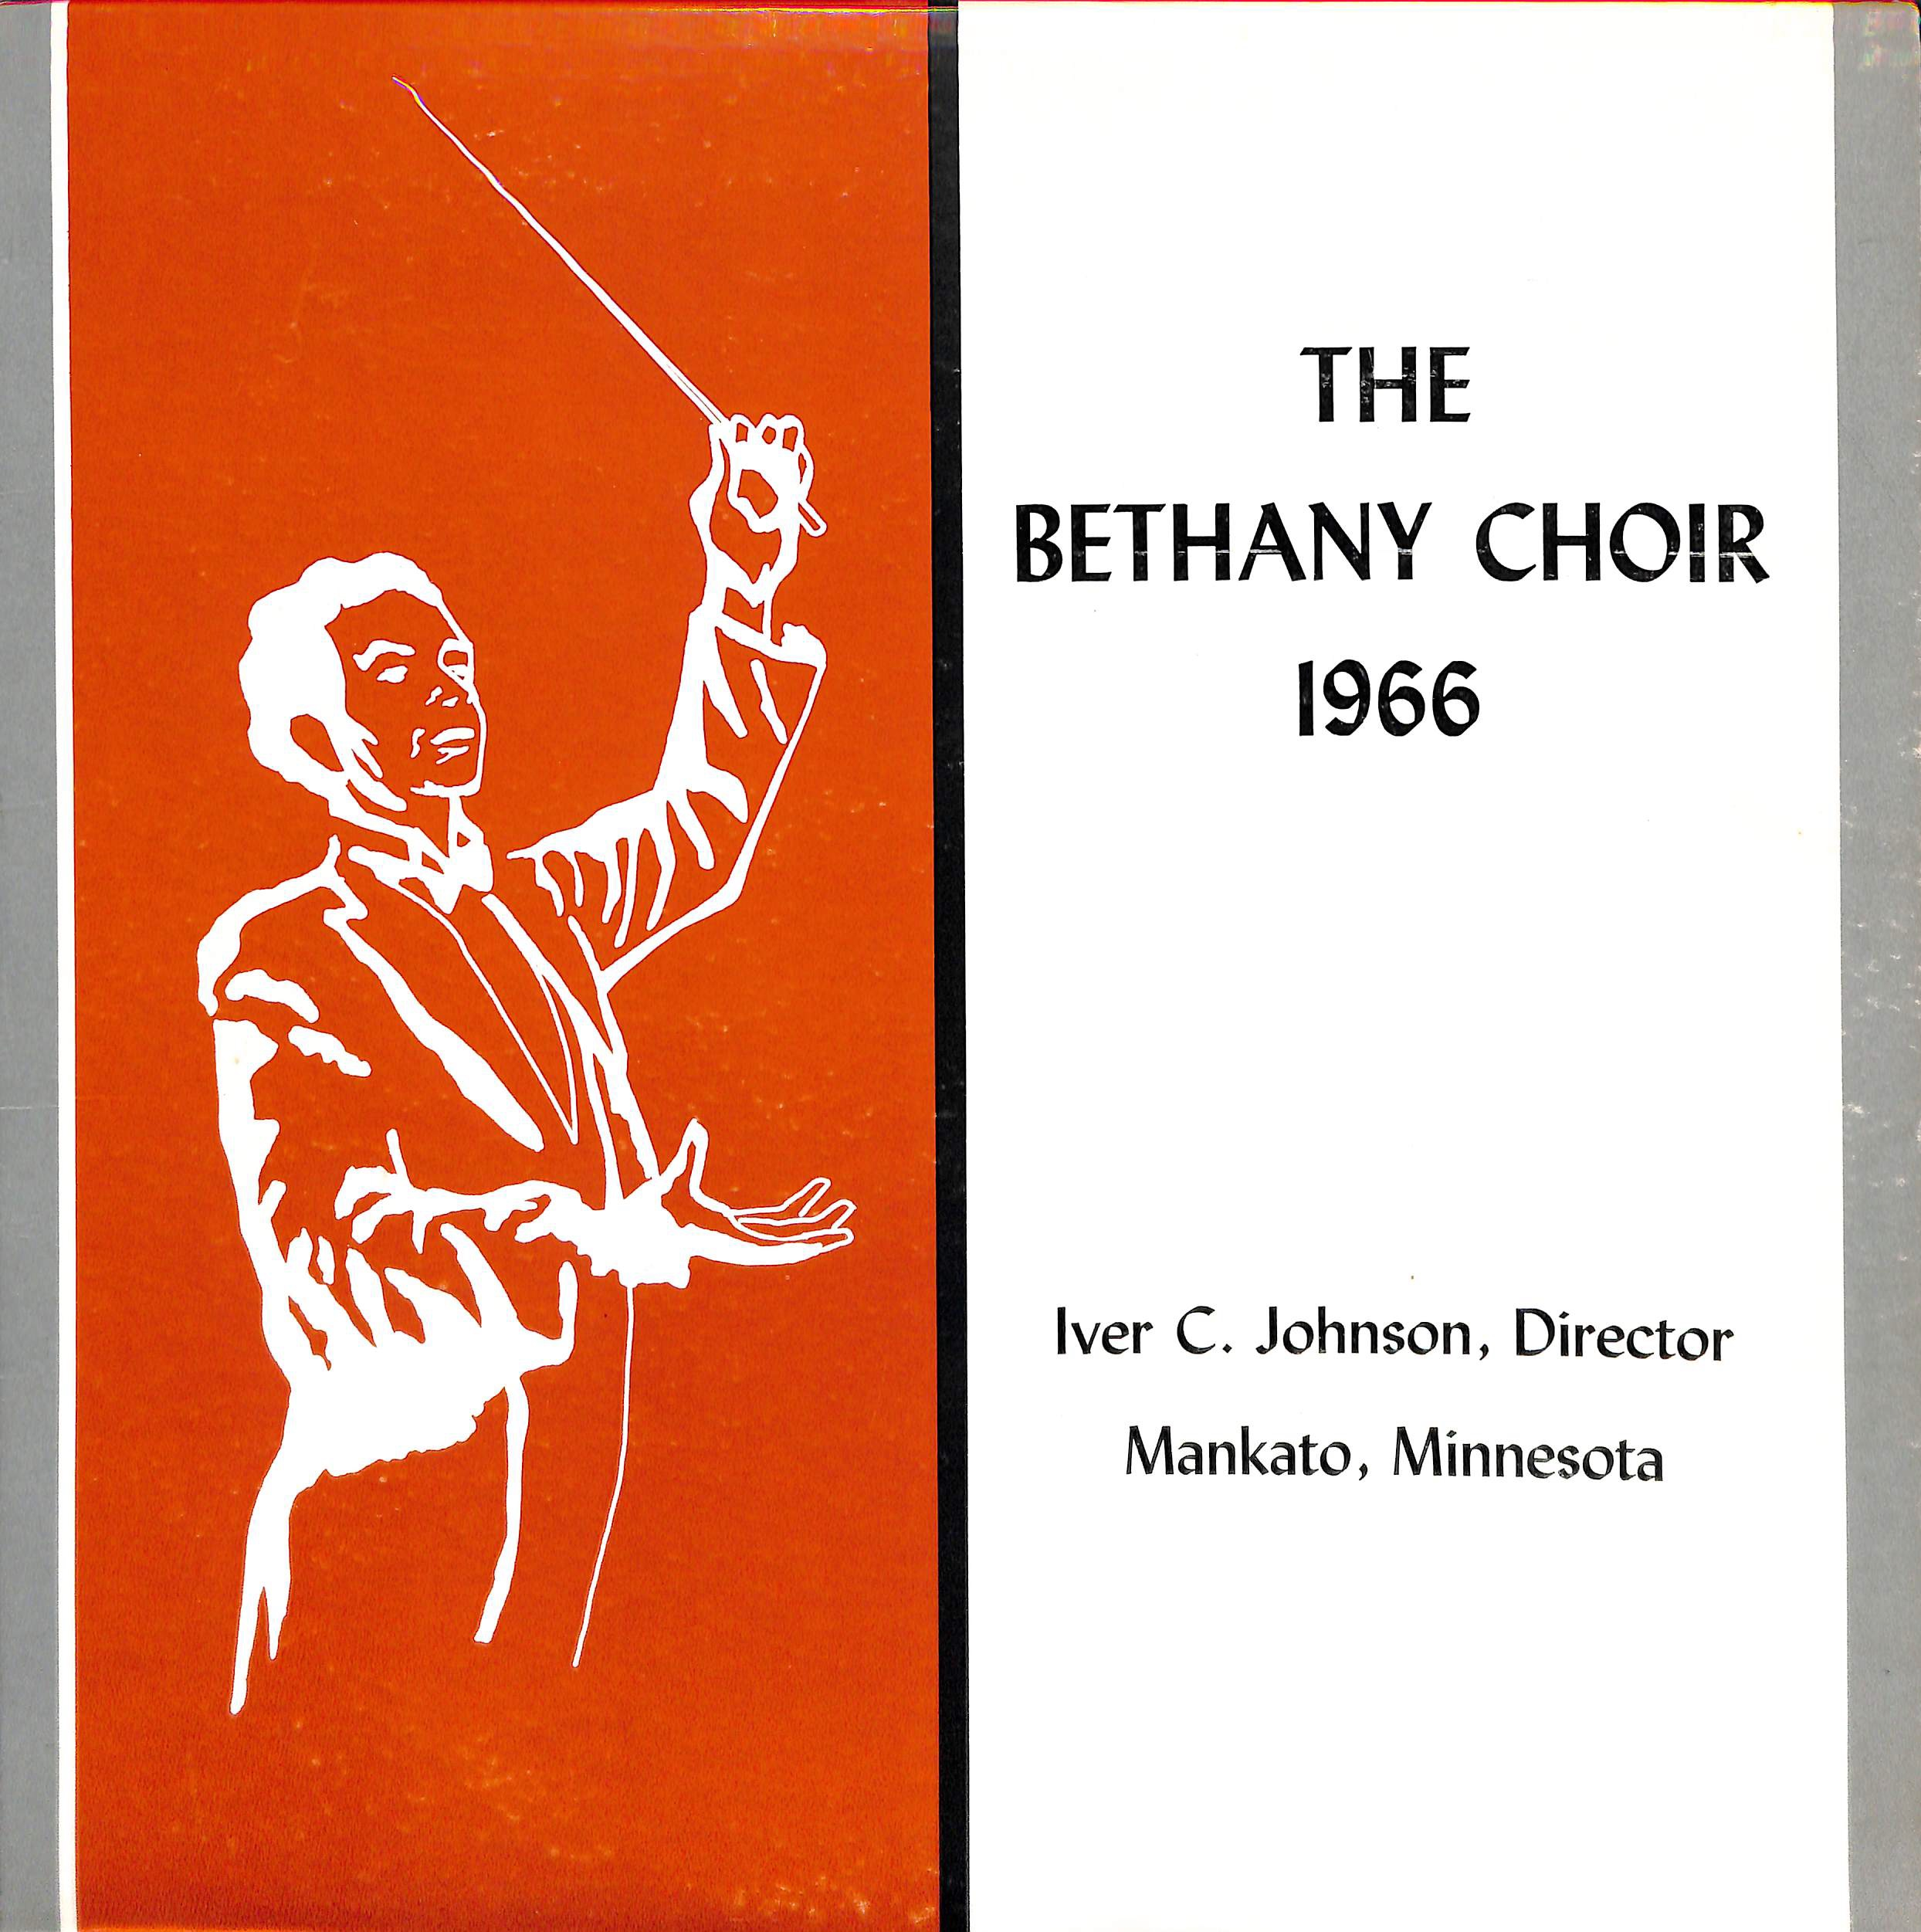 The Bethany Choir 1966